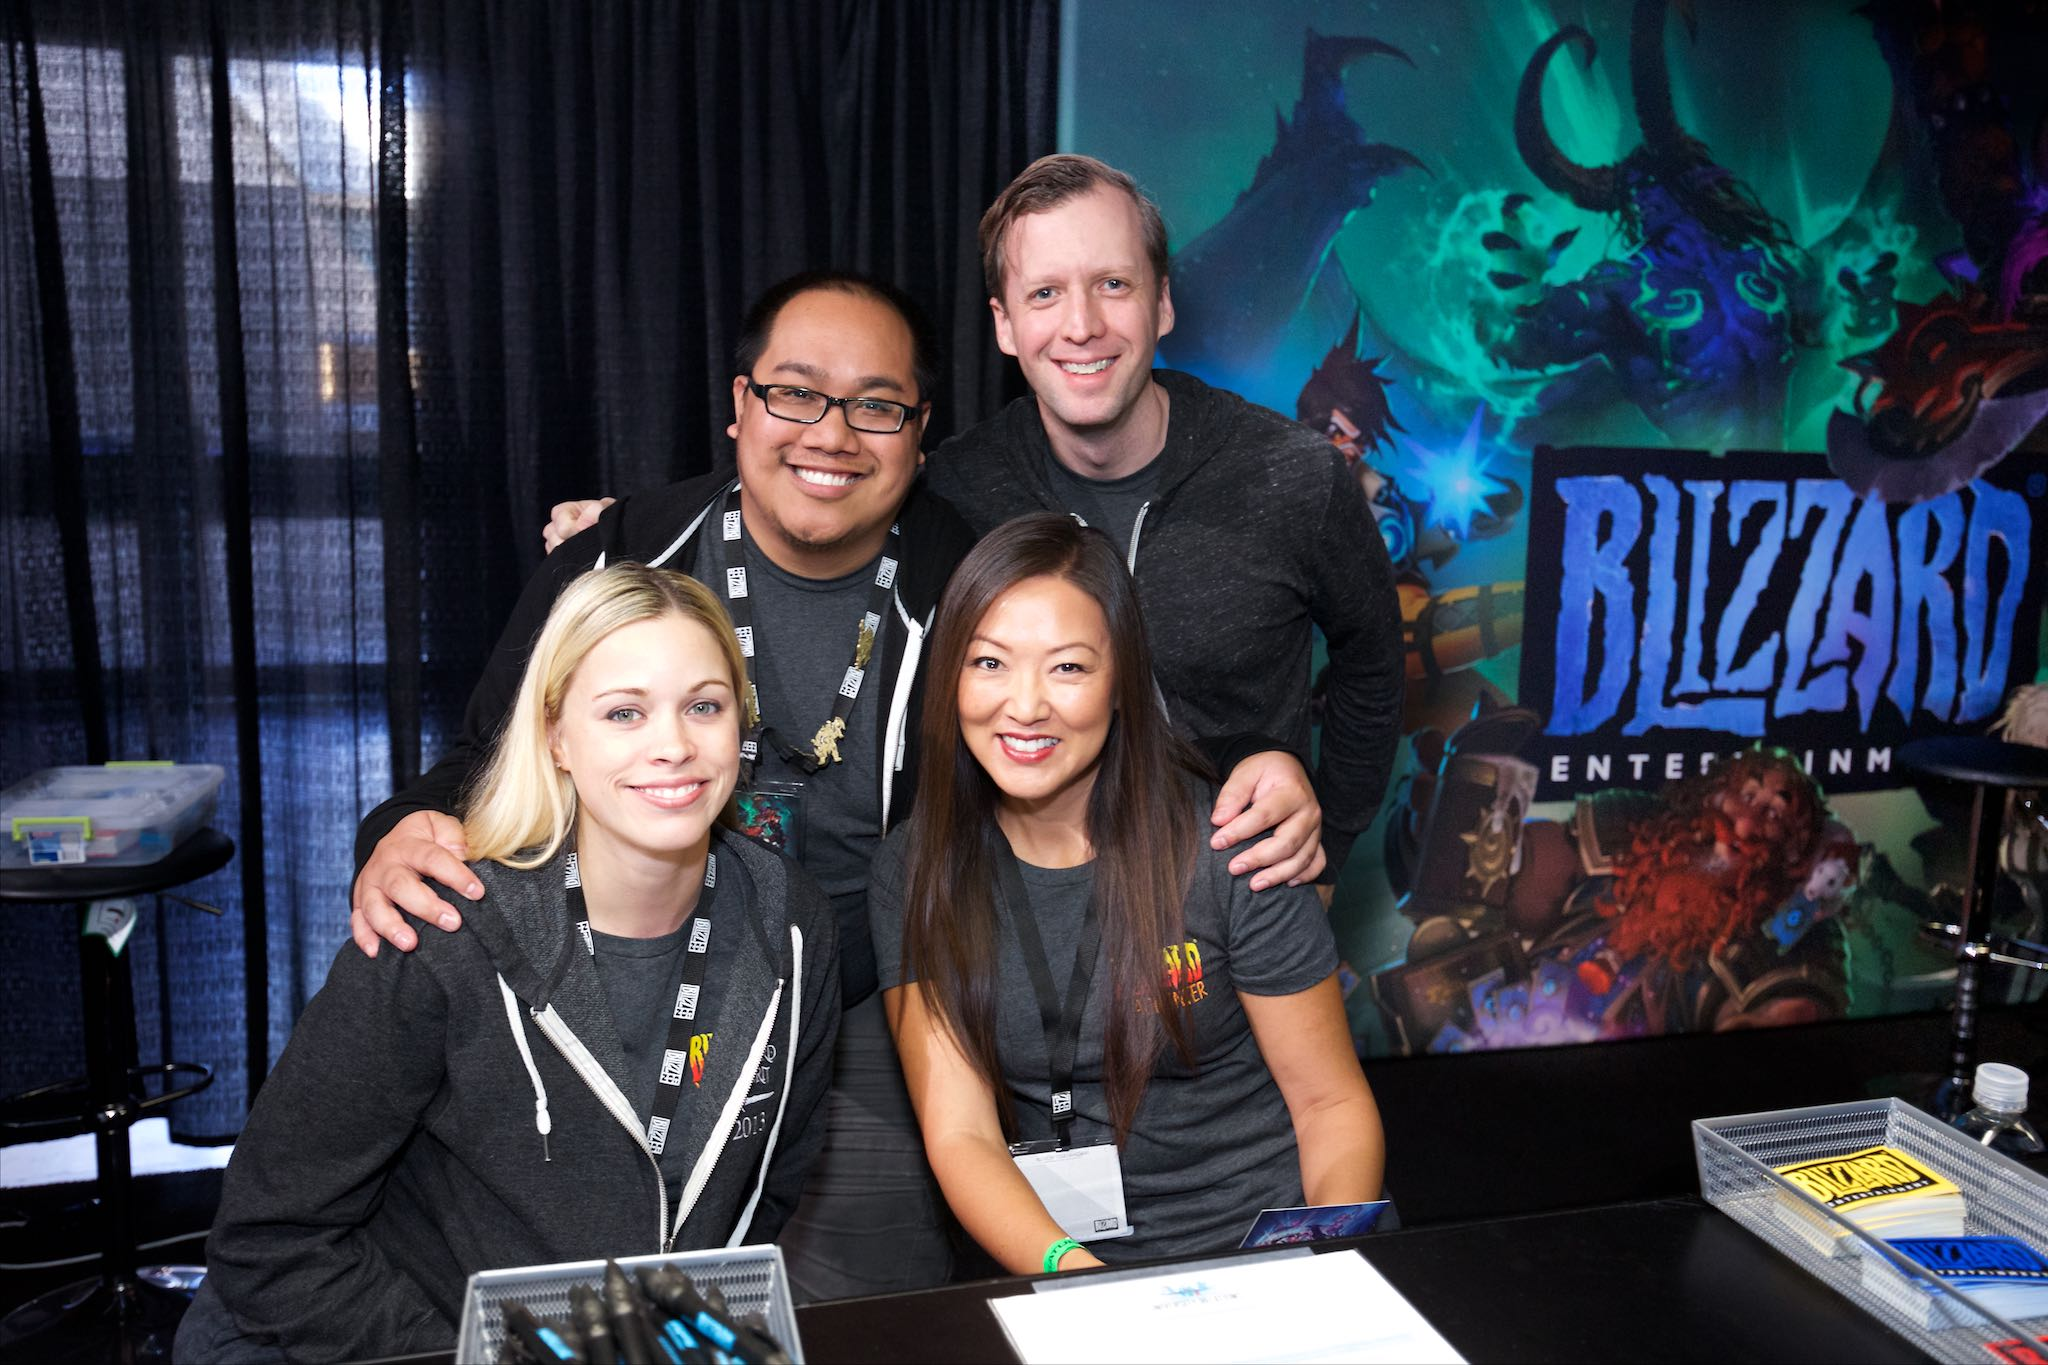 Anaheim convention center Blizzcon signing